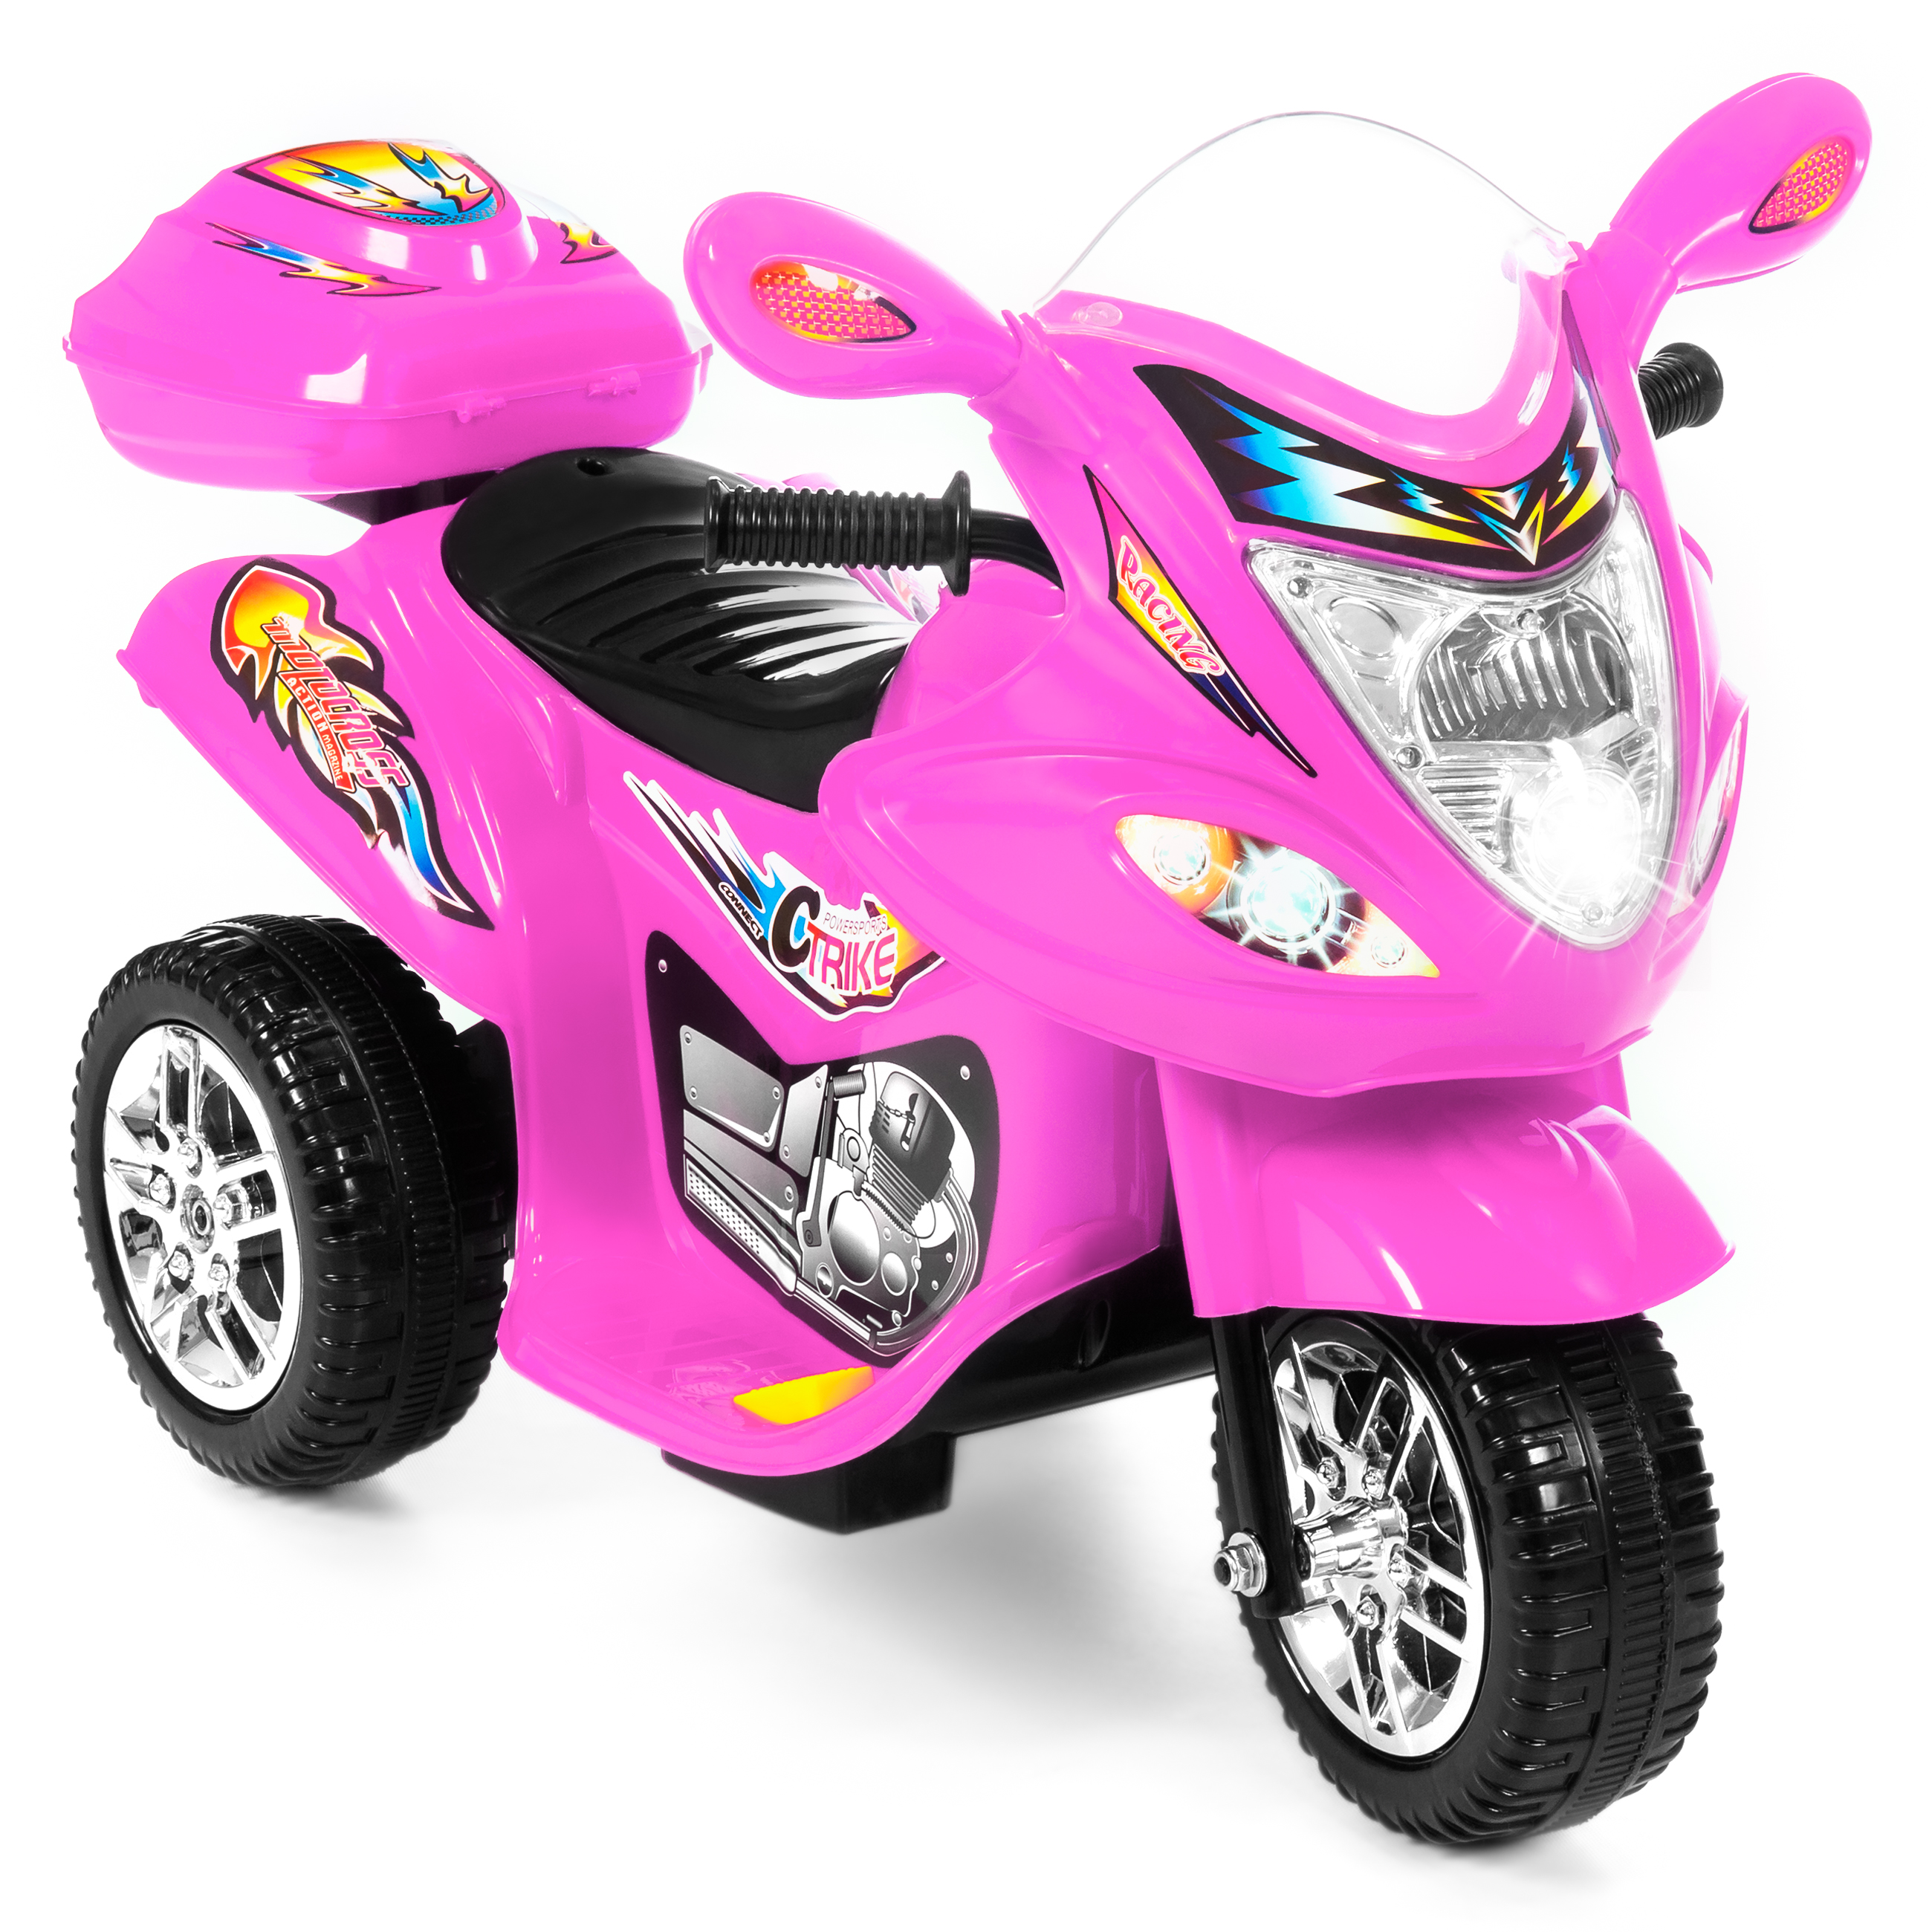 Best Choice Products Kids Ride On Motorcycle 6V Toy Battery Powered Electric 3 Wheel Power Bicycle